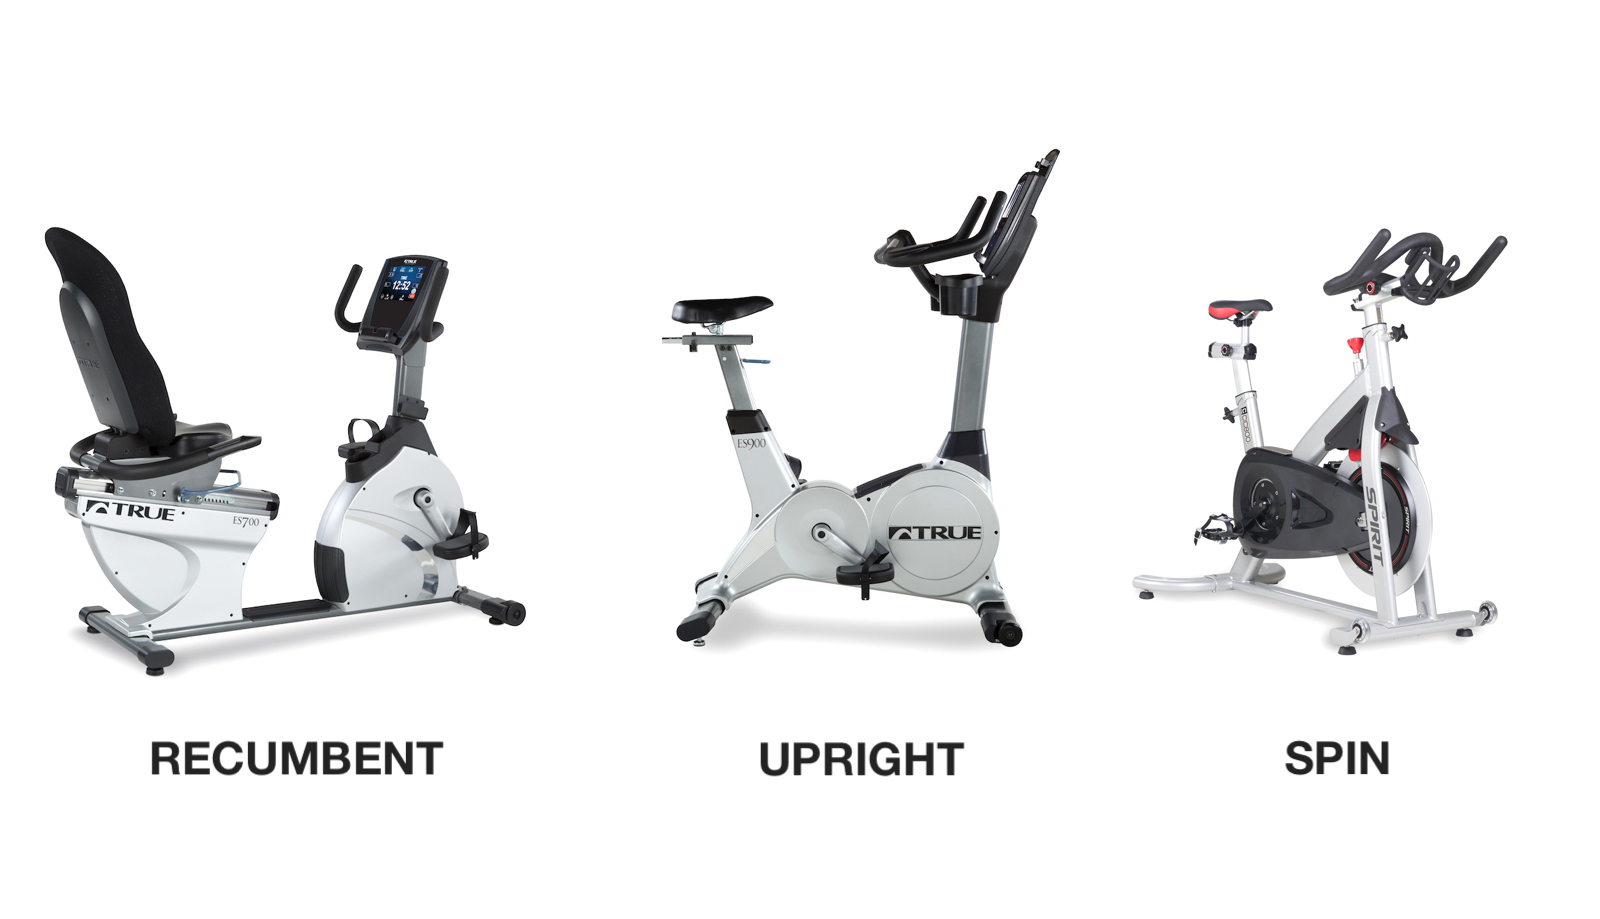 Exercise Bikes 101 - How to choose